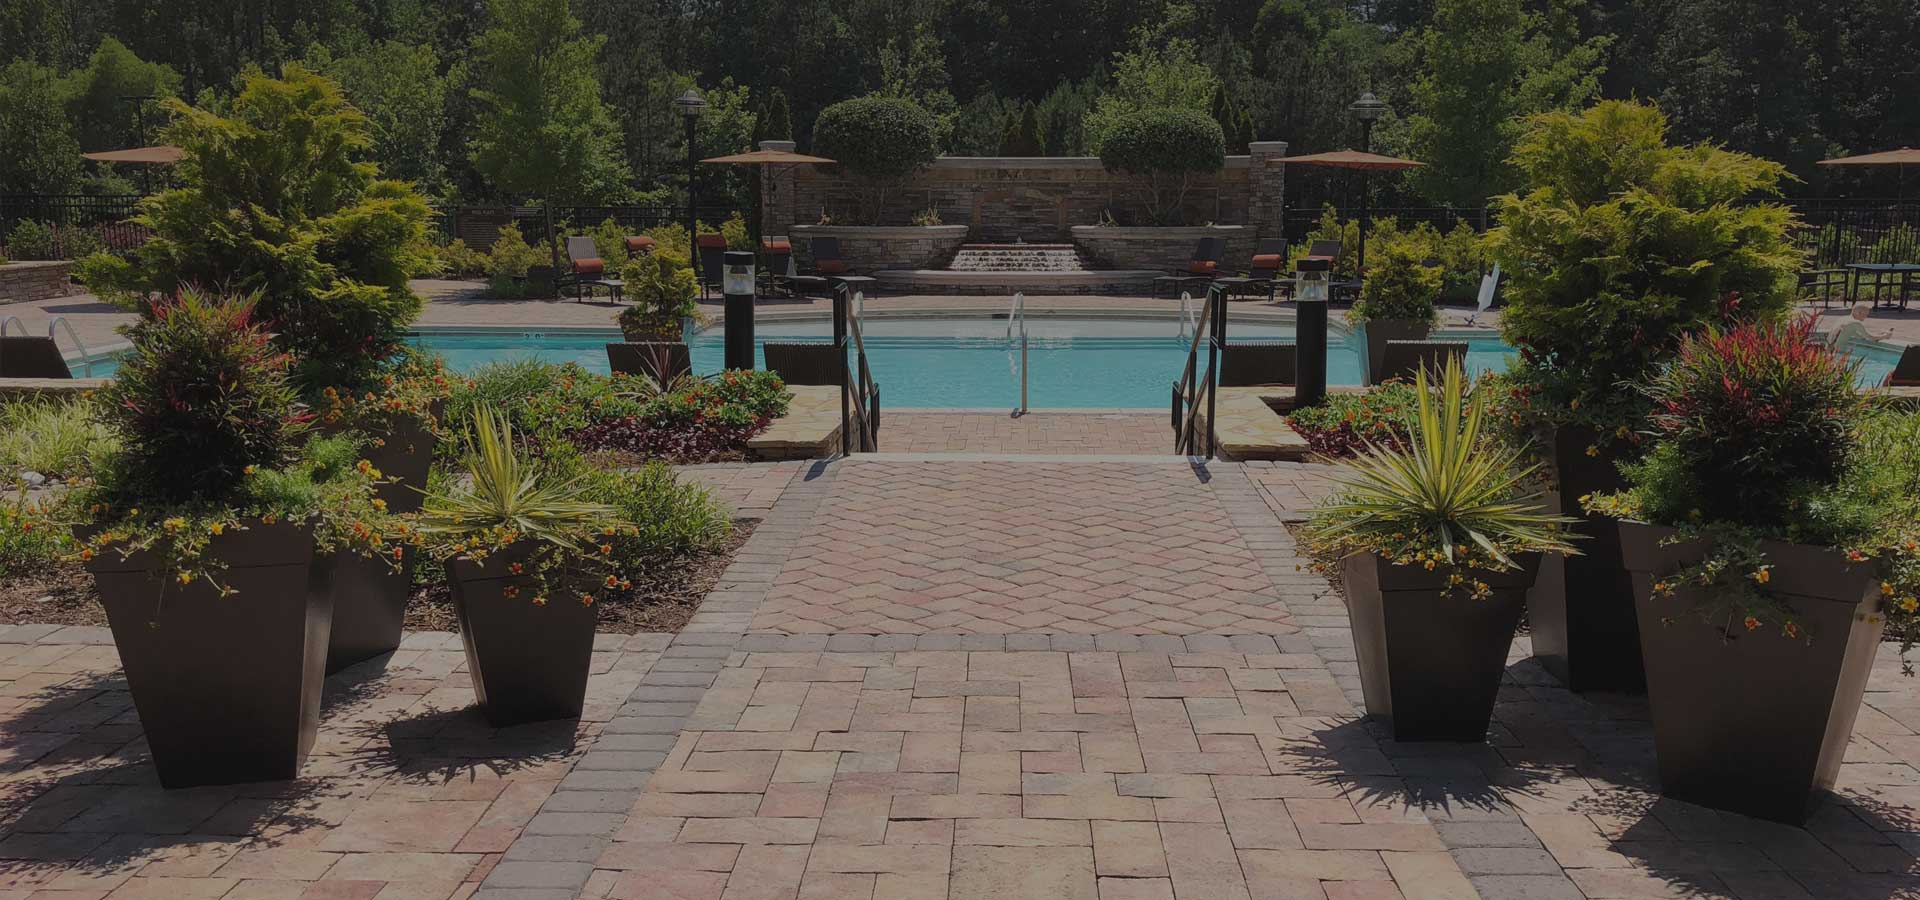 brick path leading to a pool